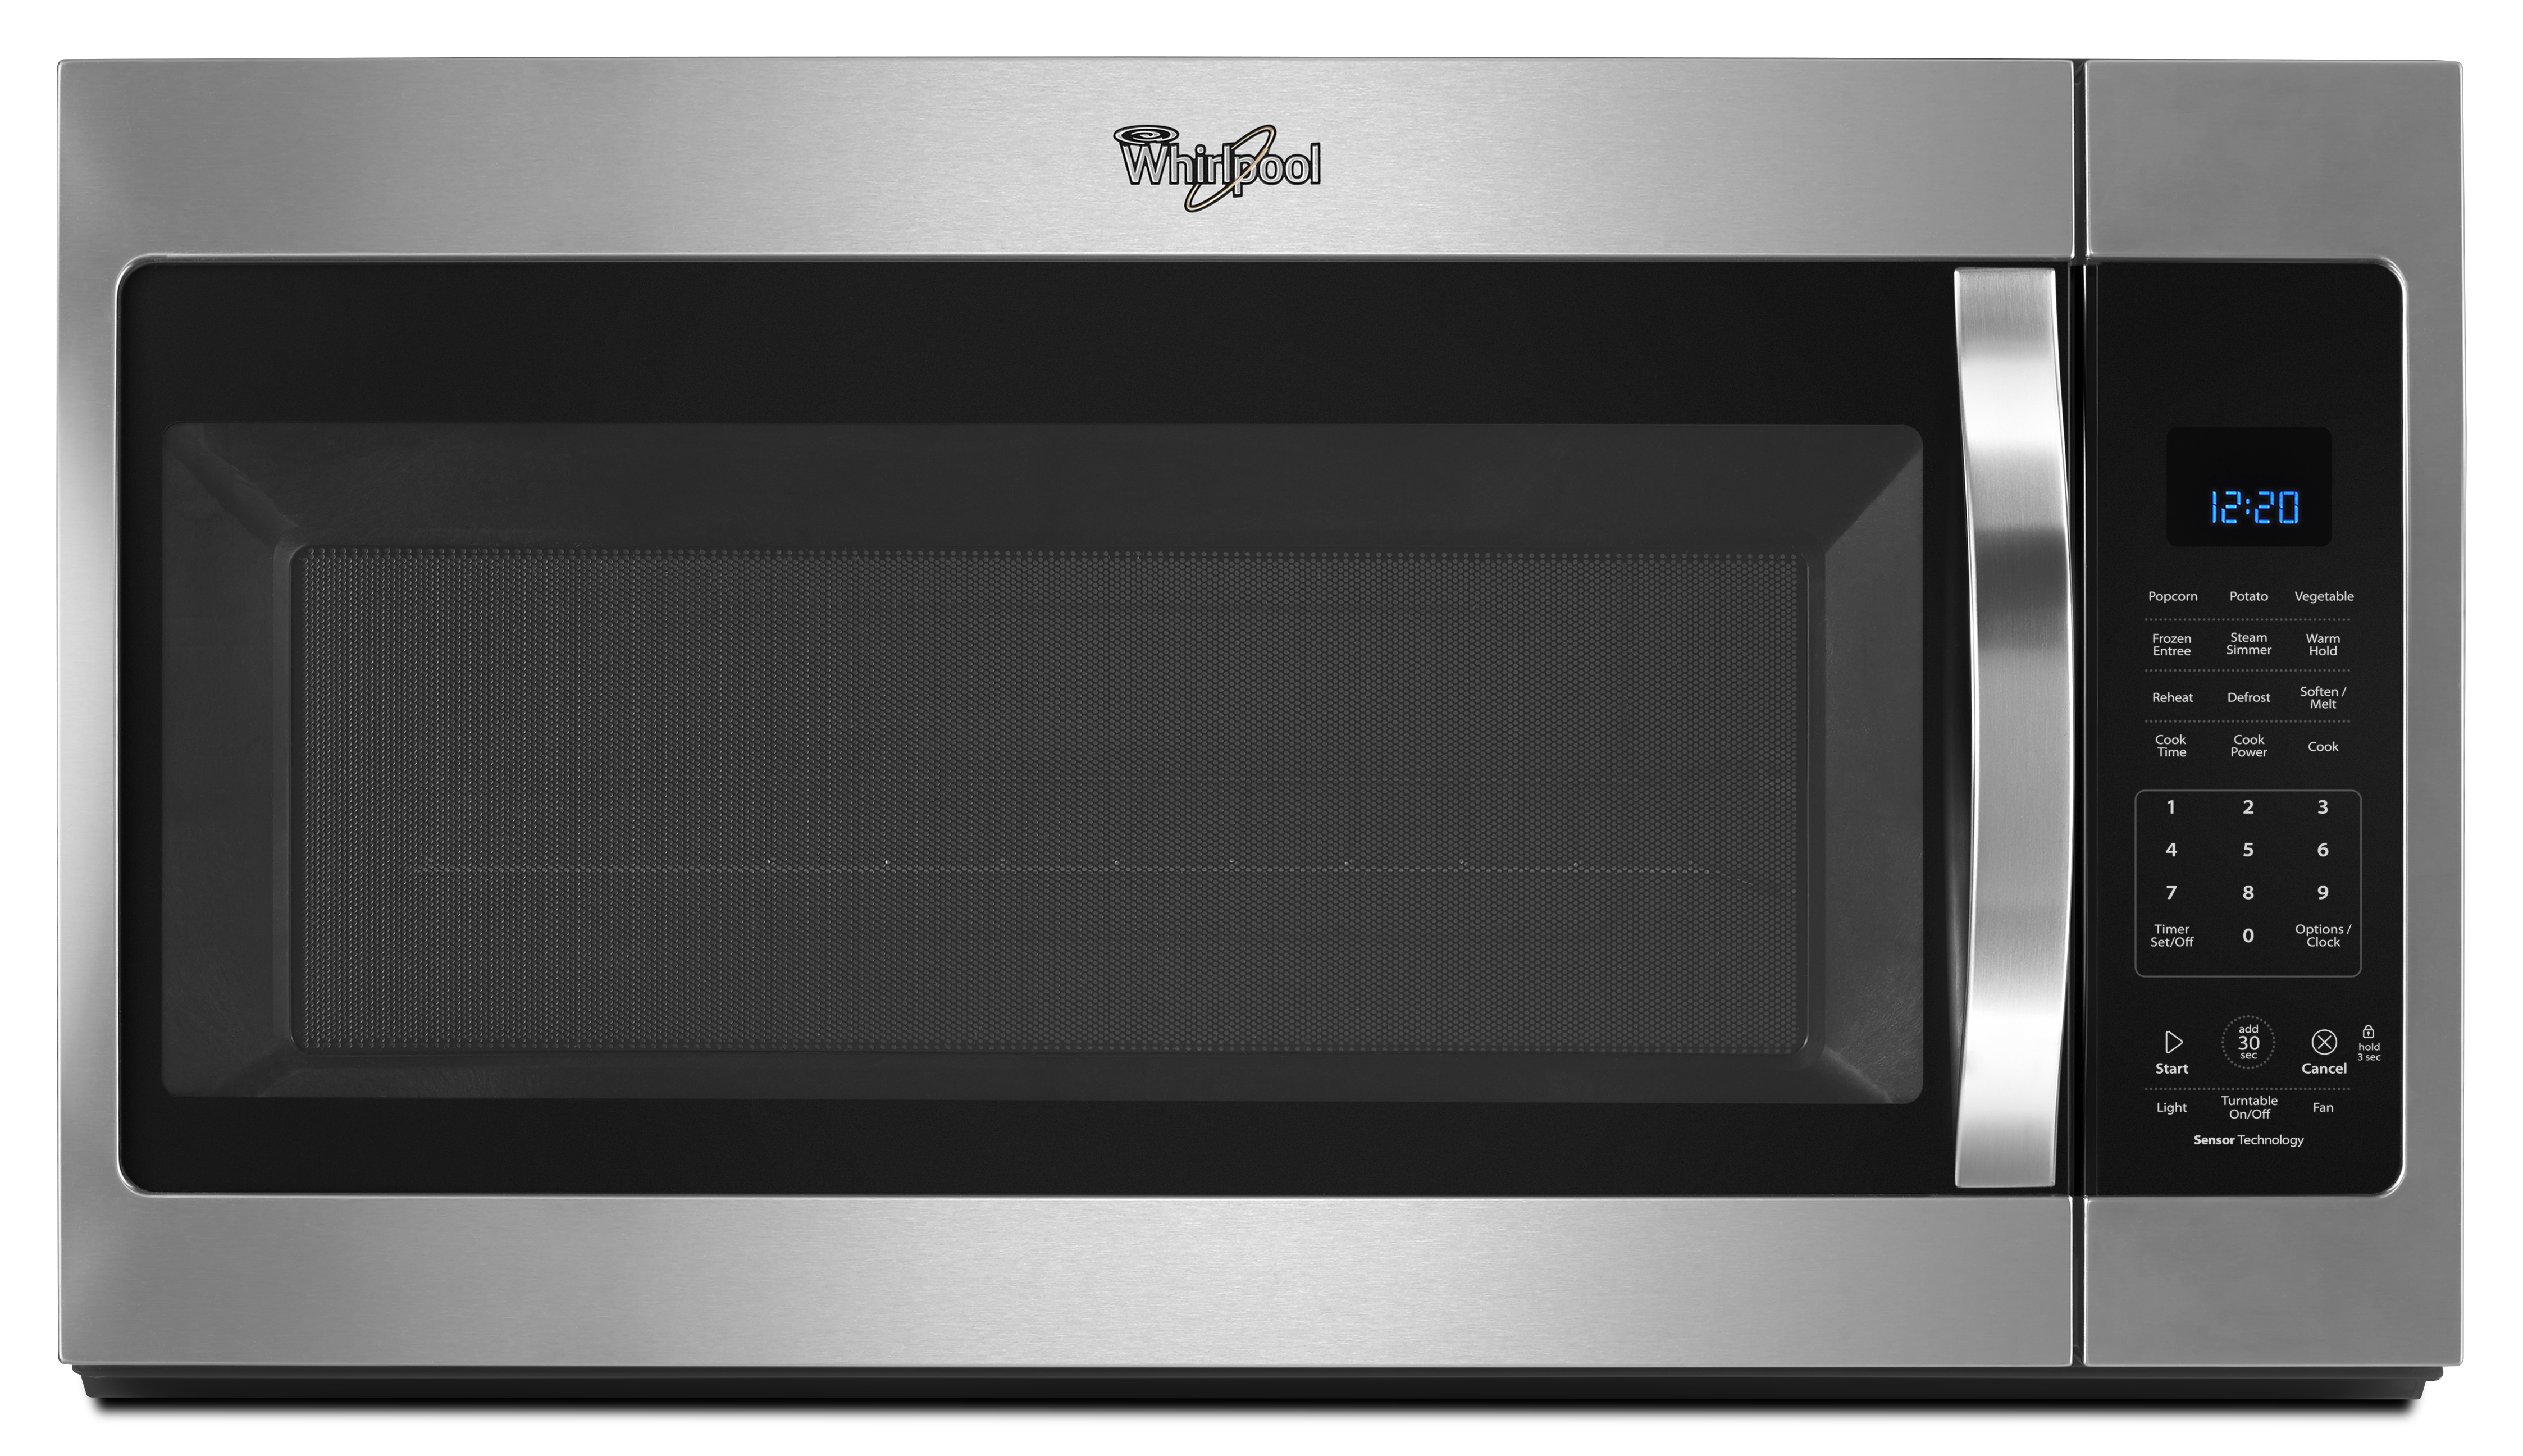 Whirlpool WMH32519FS 1.9 cu. ft. Capacity Steam Microwave w/ Sensor Cooking – Stainless Steel